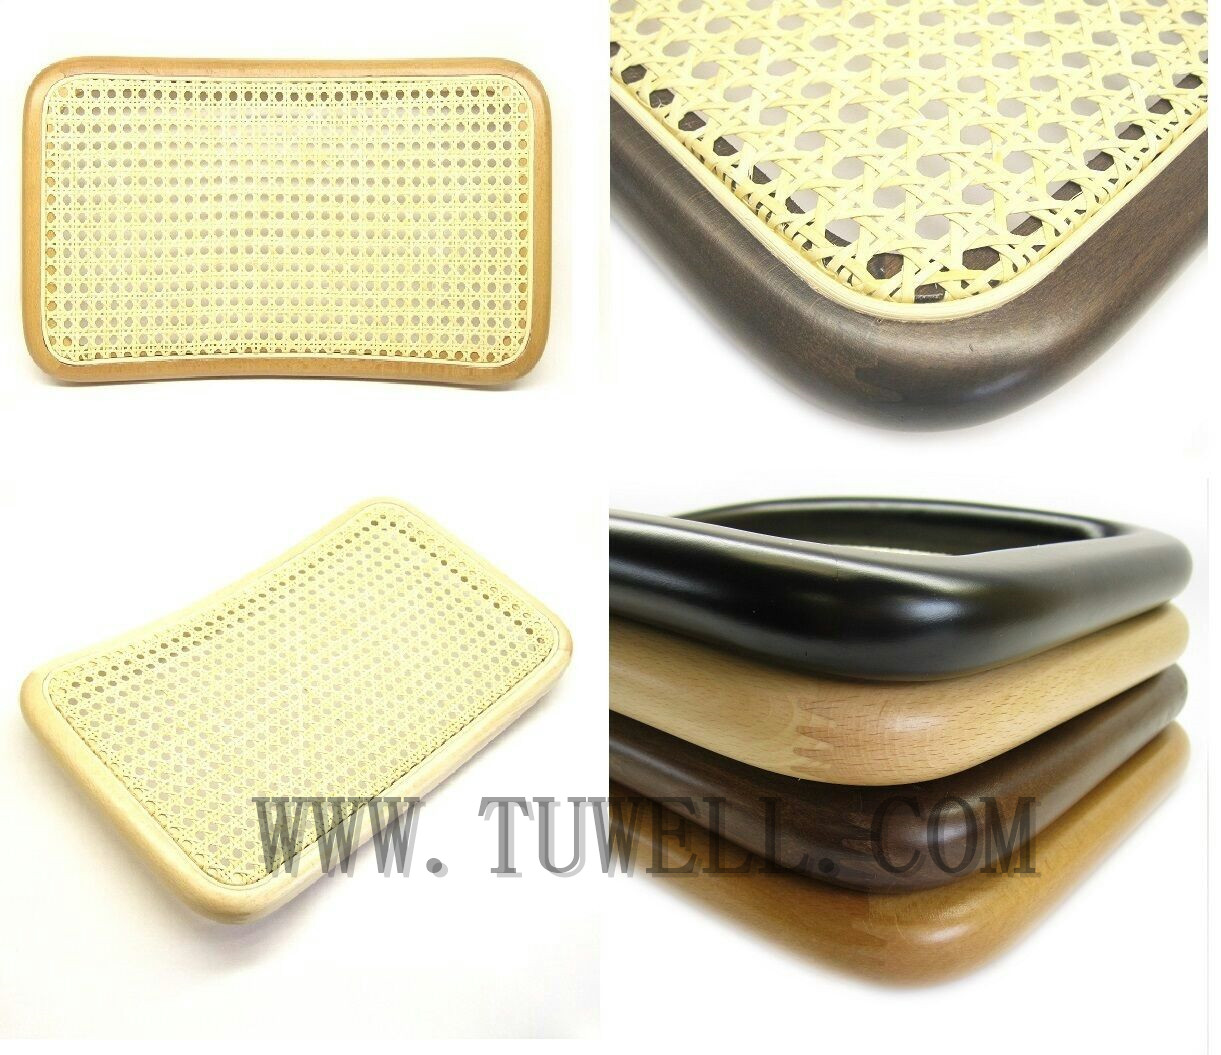 Tuwell-Oem Rattan Chair Manufacturer, Rattan Chair Wholesale | Tuwell-10